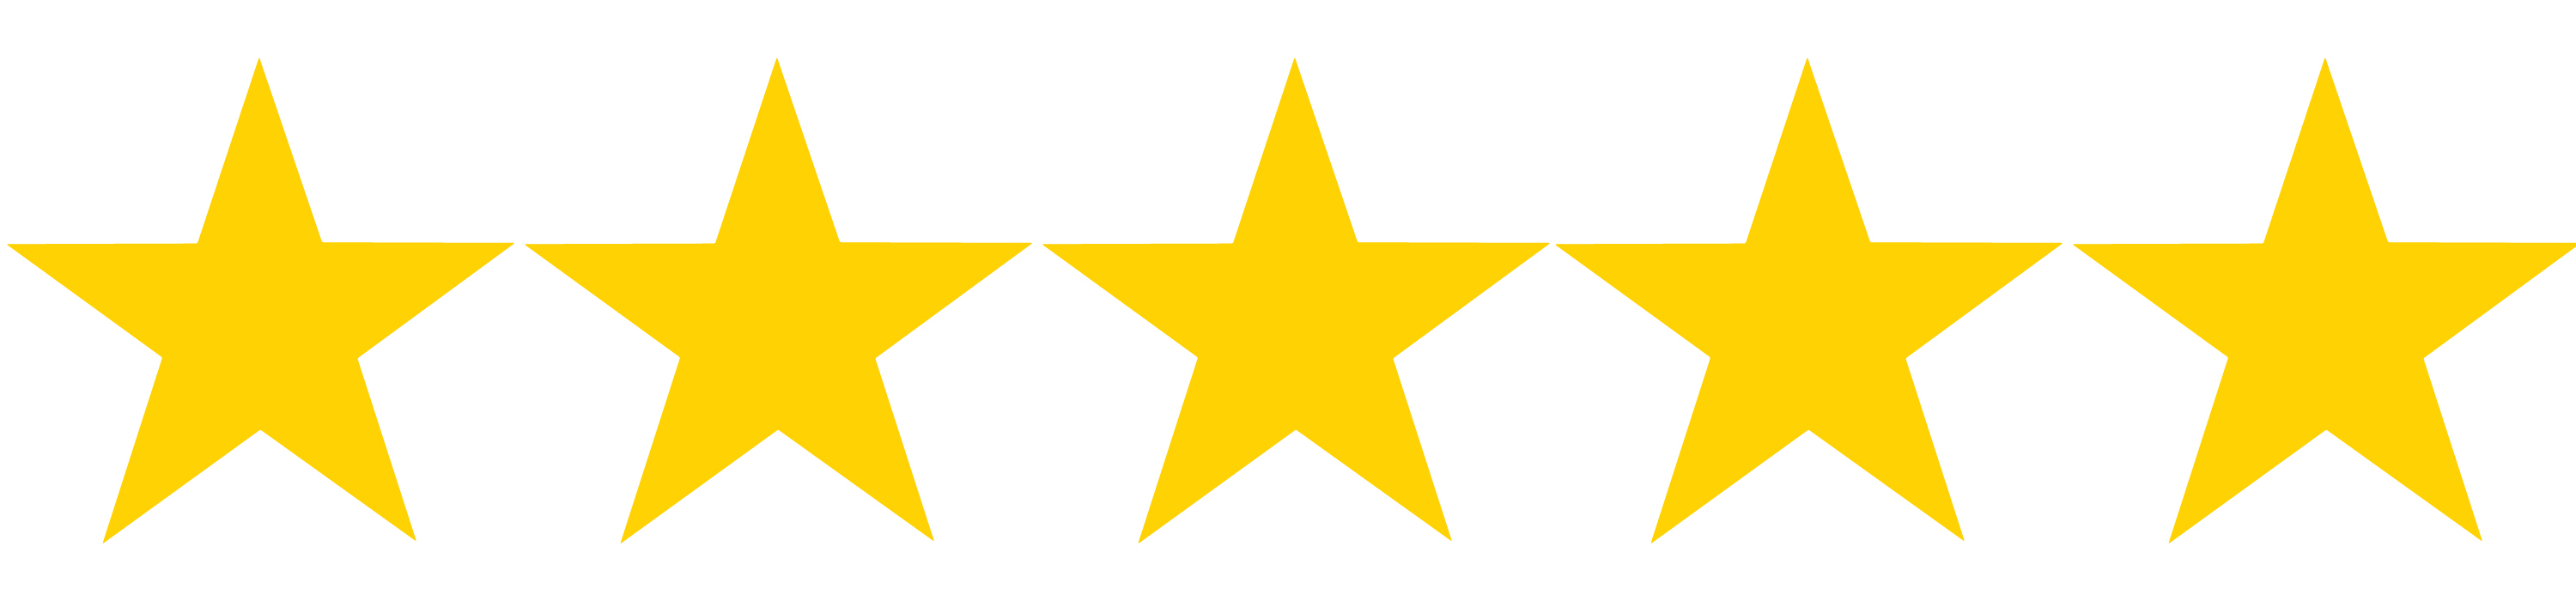 Image result for reviews star icon